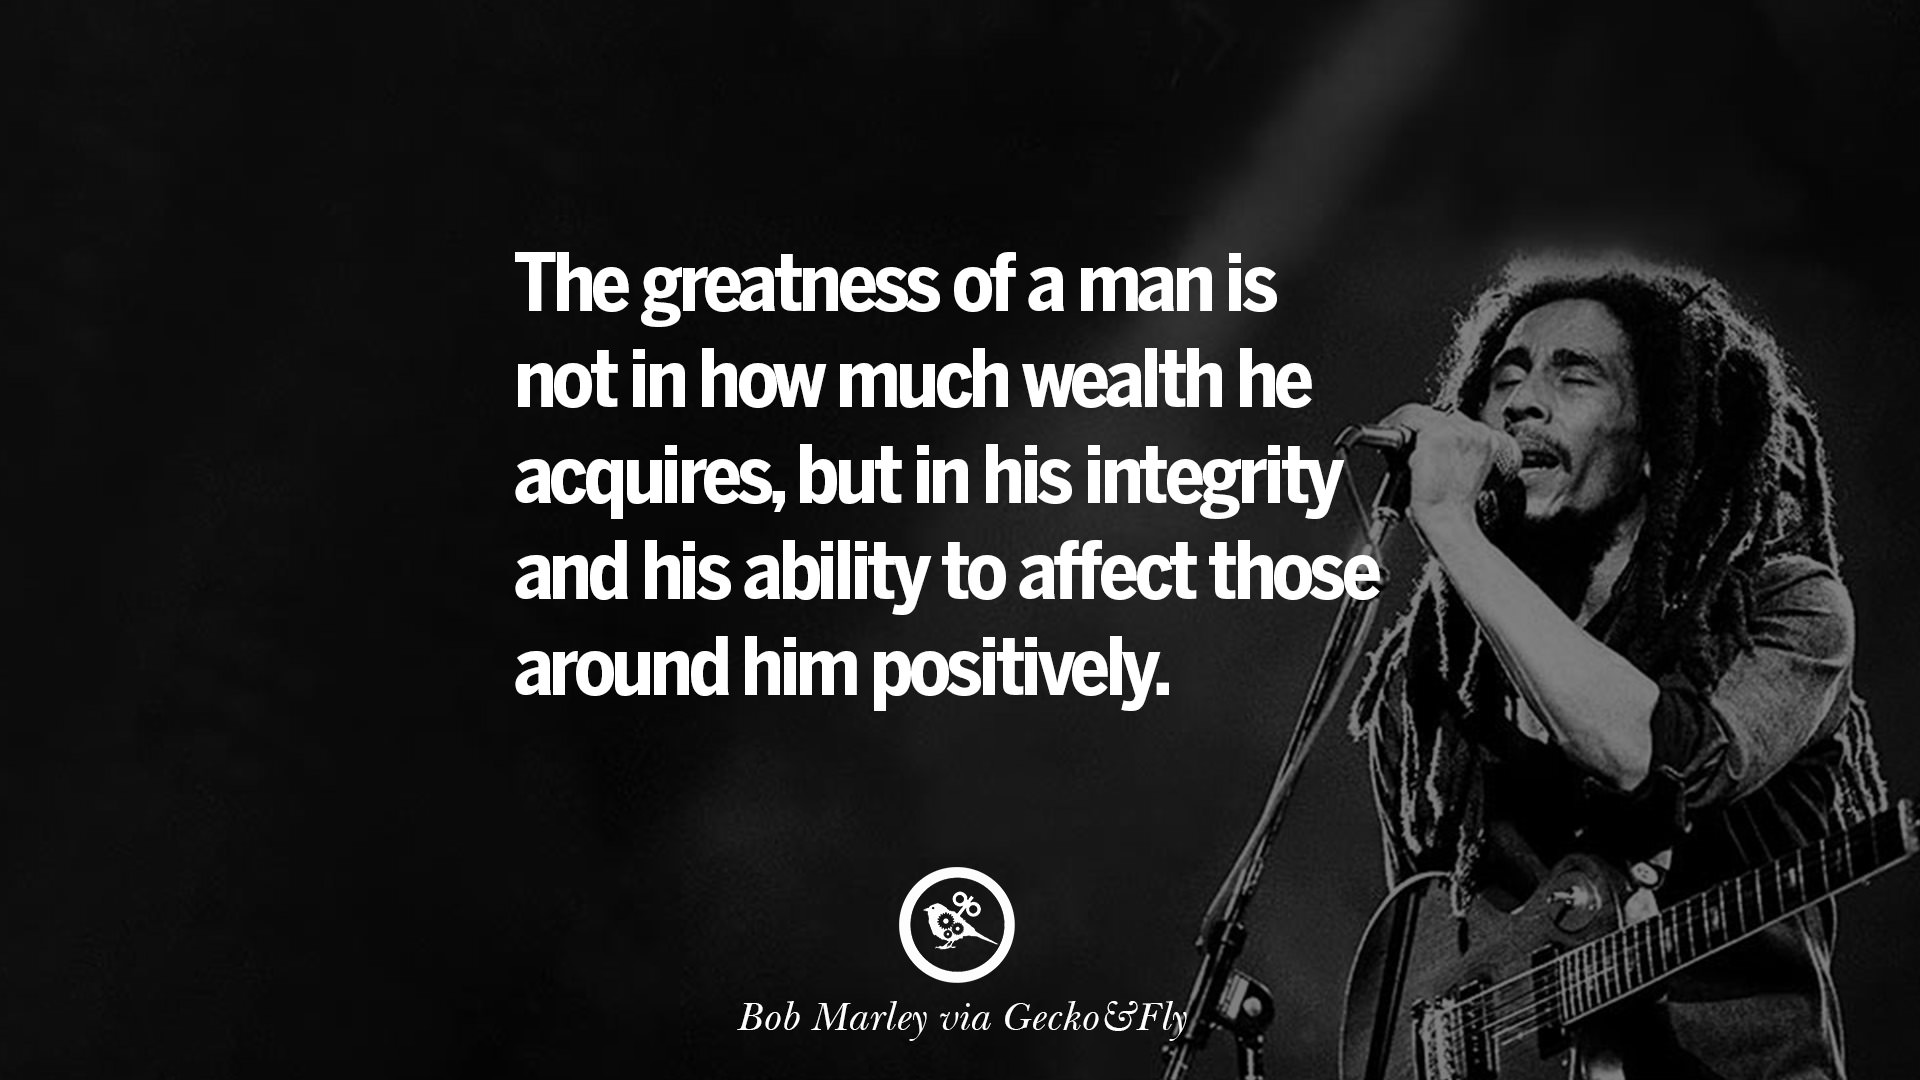 10 bob marley quotes and frases on marijuana mentality and truth altavistaventures Image collections